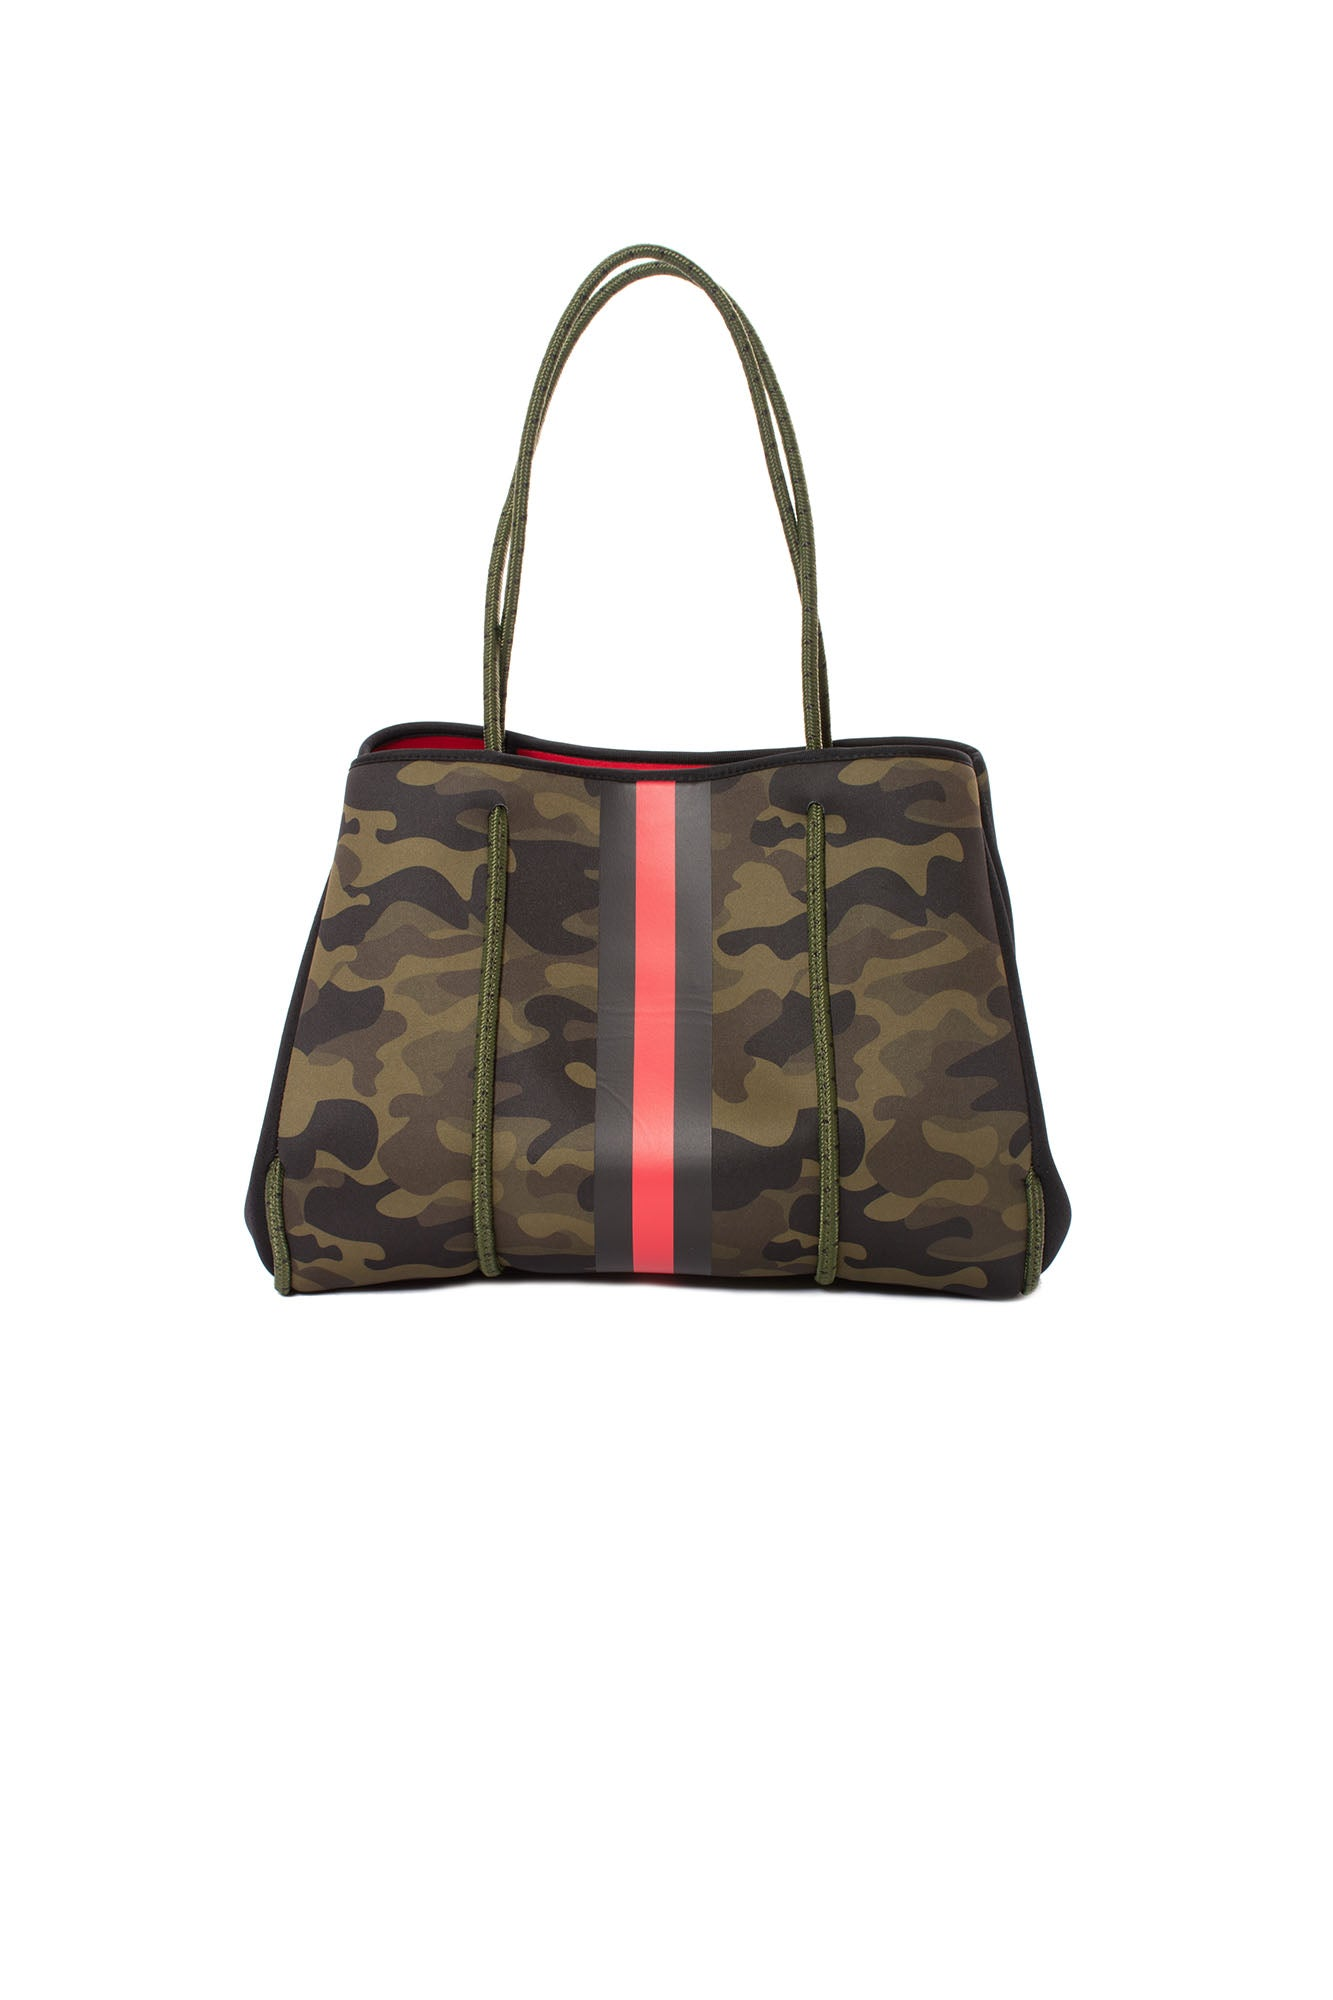 Haute Shore - Greyson Brat2 Neoprene Tote Bag w/Zipper Wristlet Inside (Greyson, Camo Gren w/Black & Red Stripe)